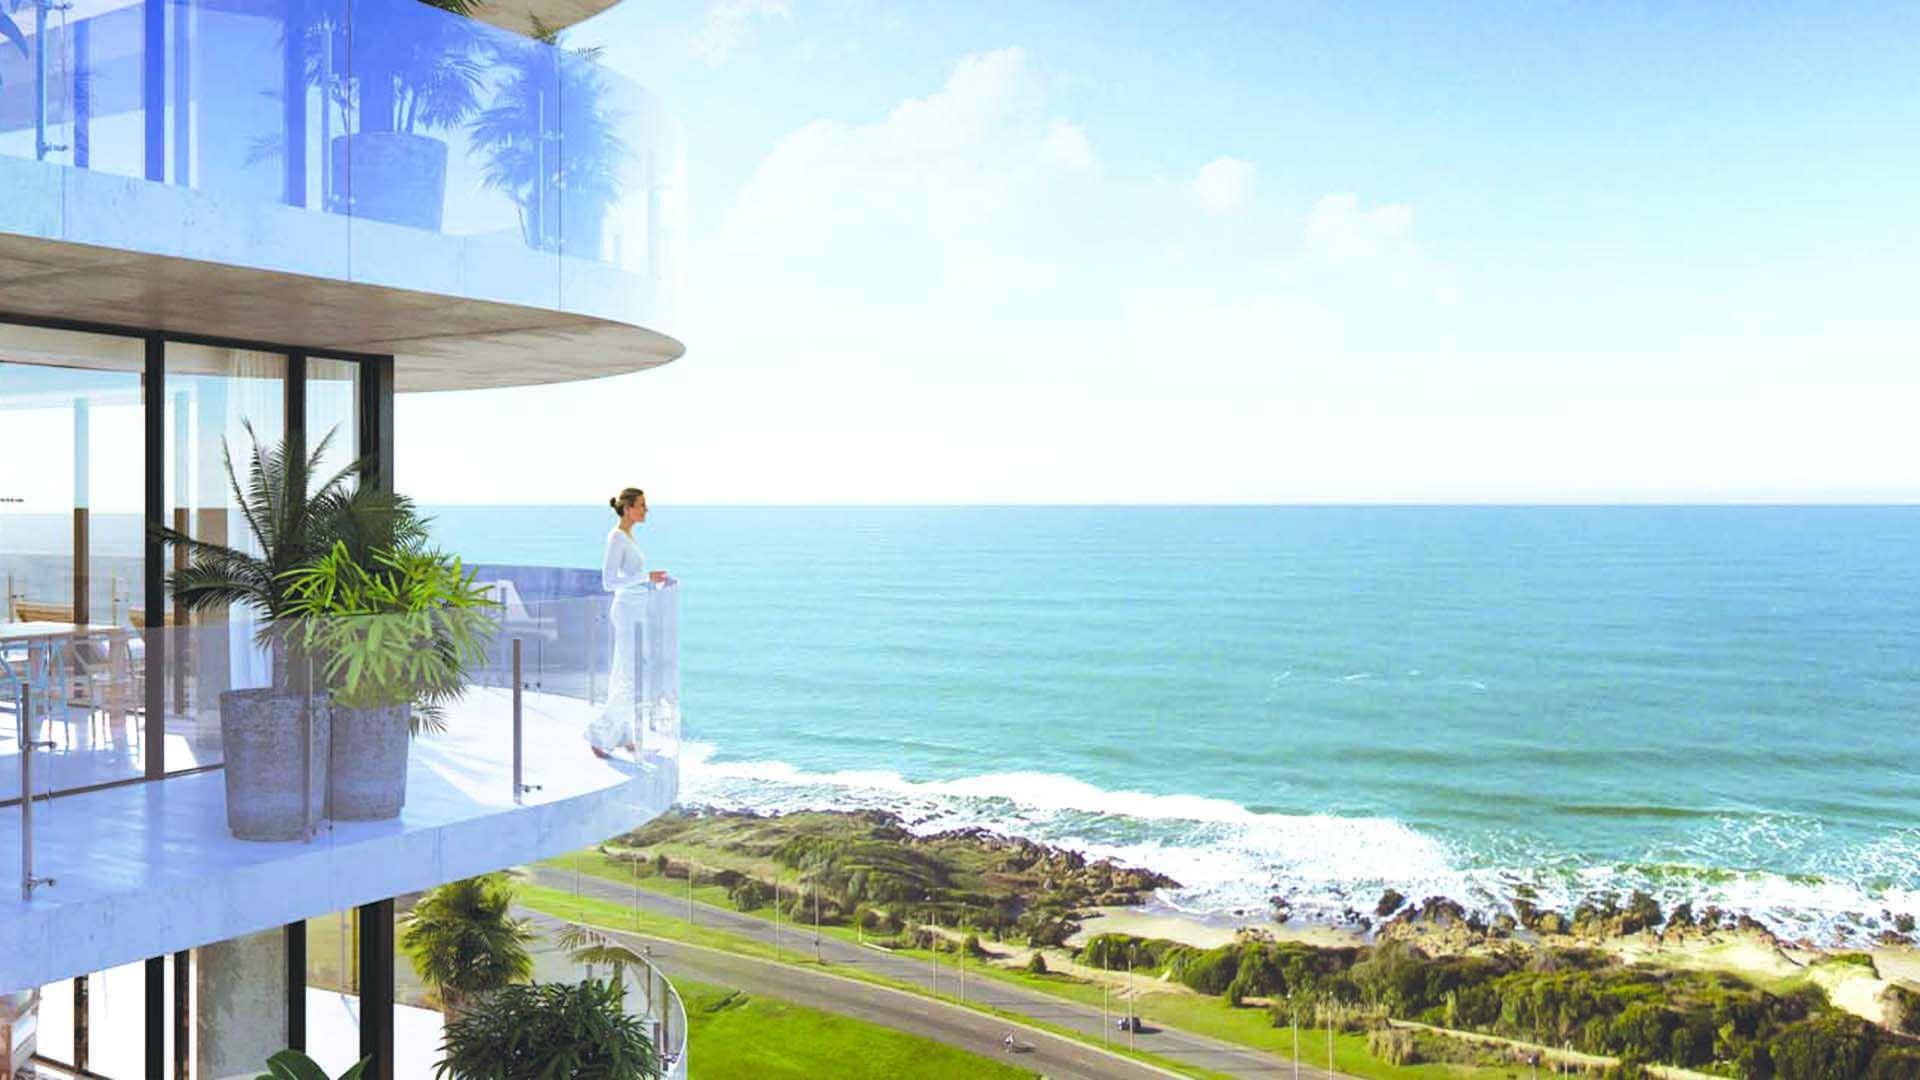 Surfside Village I Luxury Condo located in Punta del Este, Punta del Este, Uruguay, listed by Curiocity Villas.